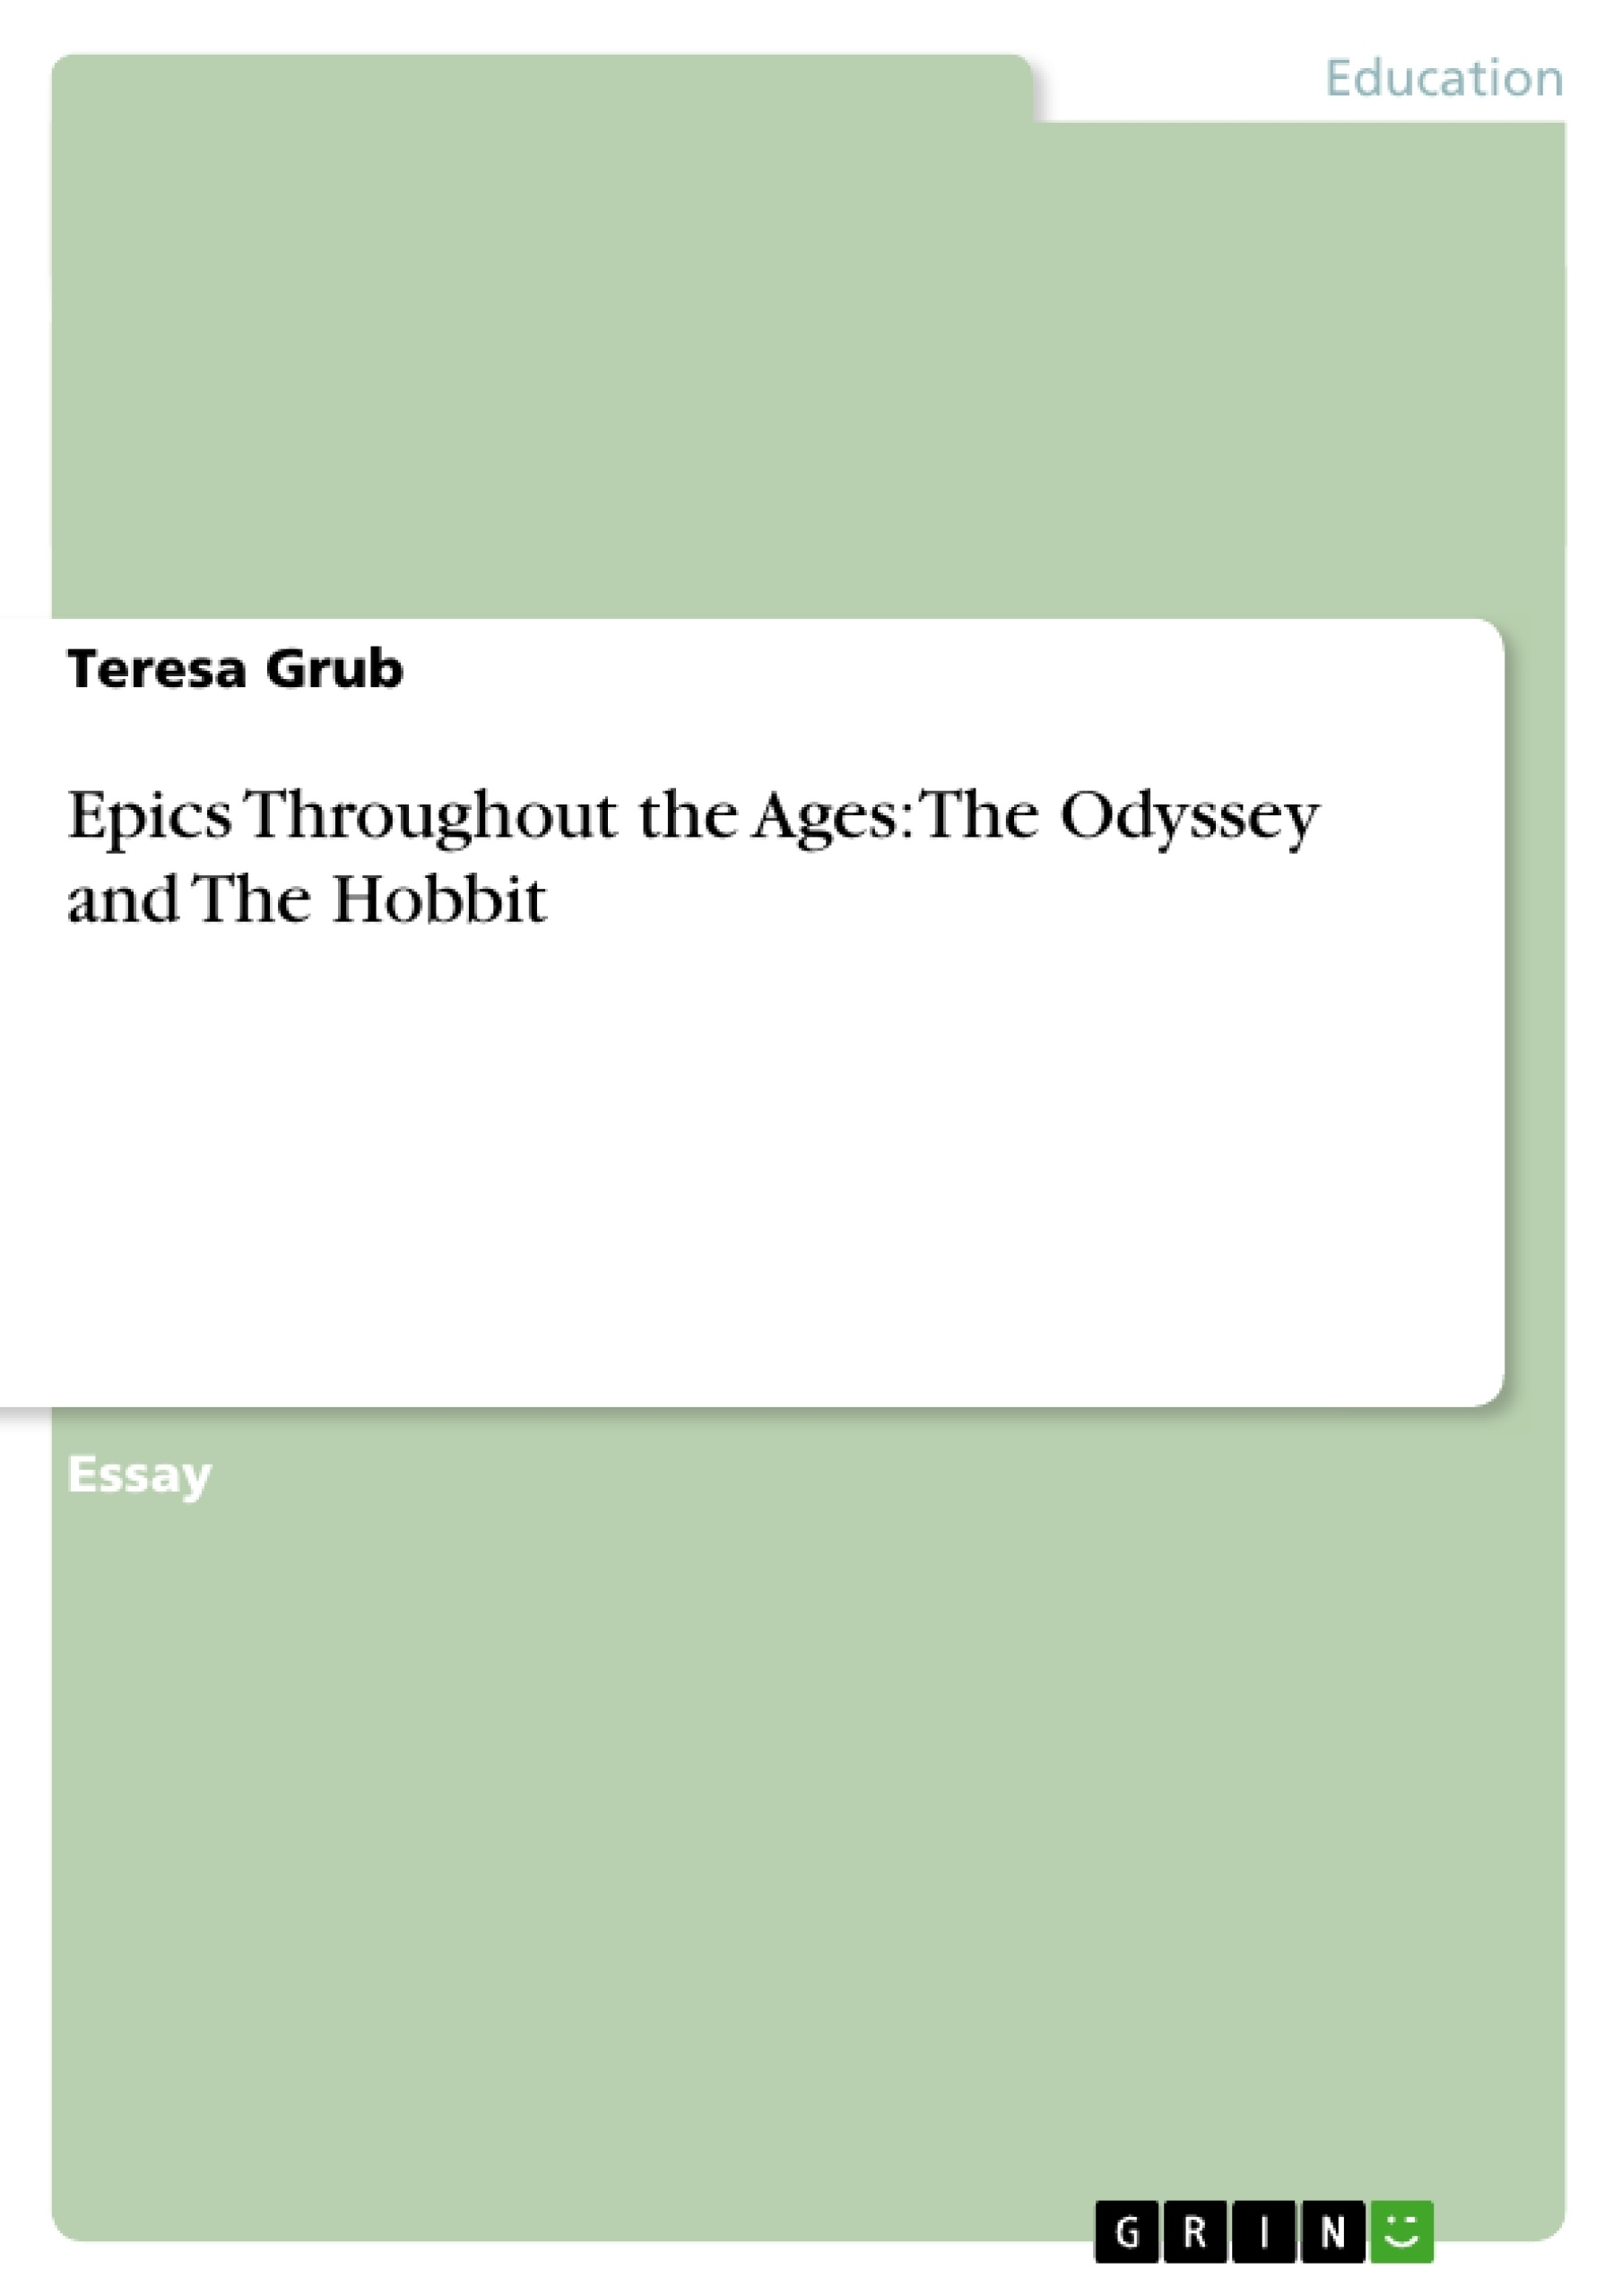 epics throughout the ages the odyssey and the hobbit publish epics throughout the ages the odyssey and the hobbit publish your master s thesis bachelor s thesis essay or term paper